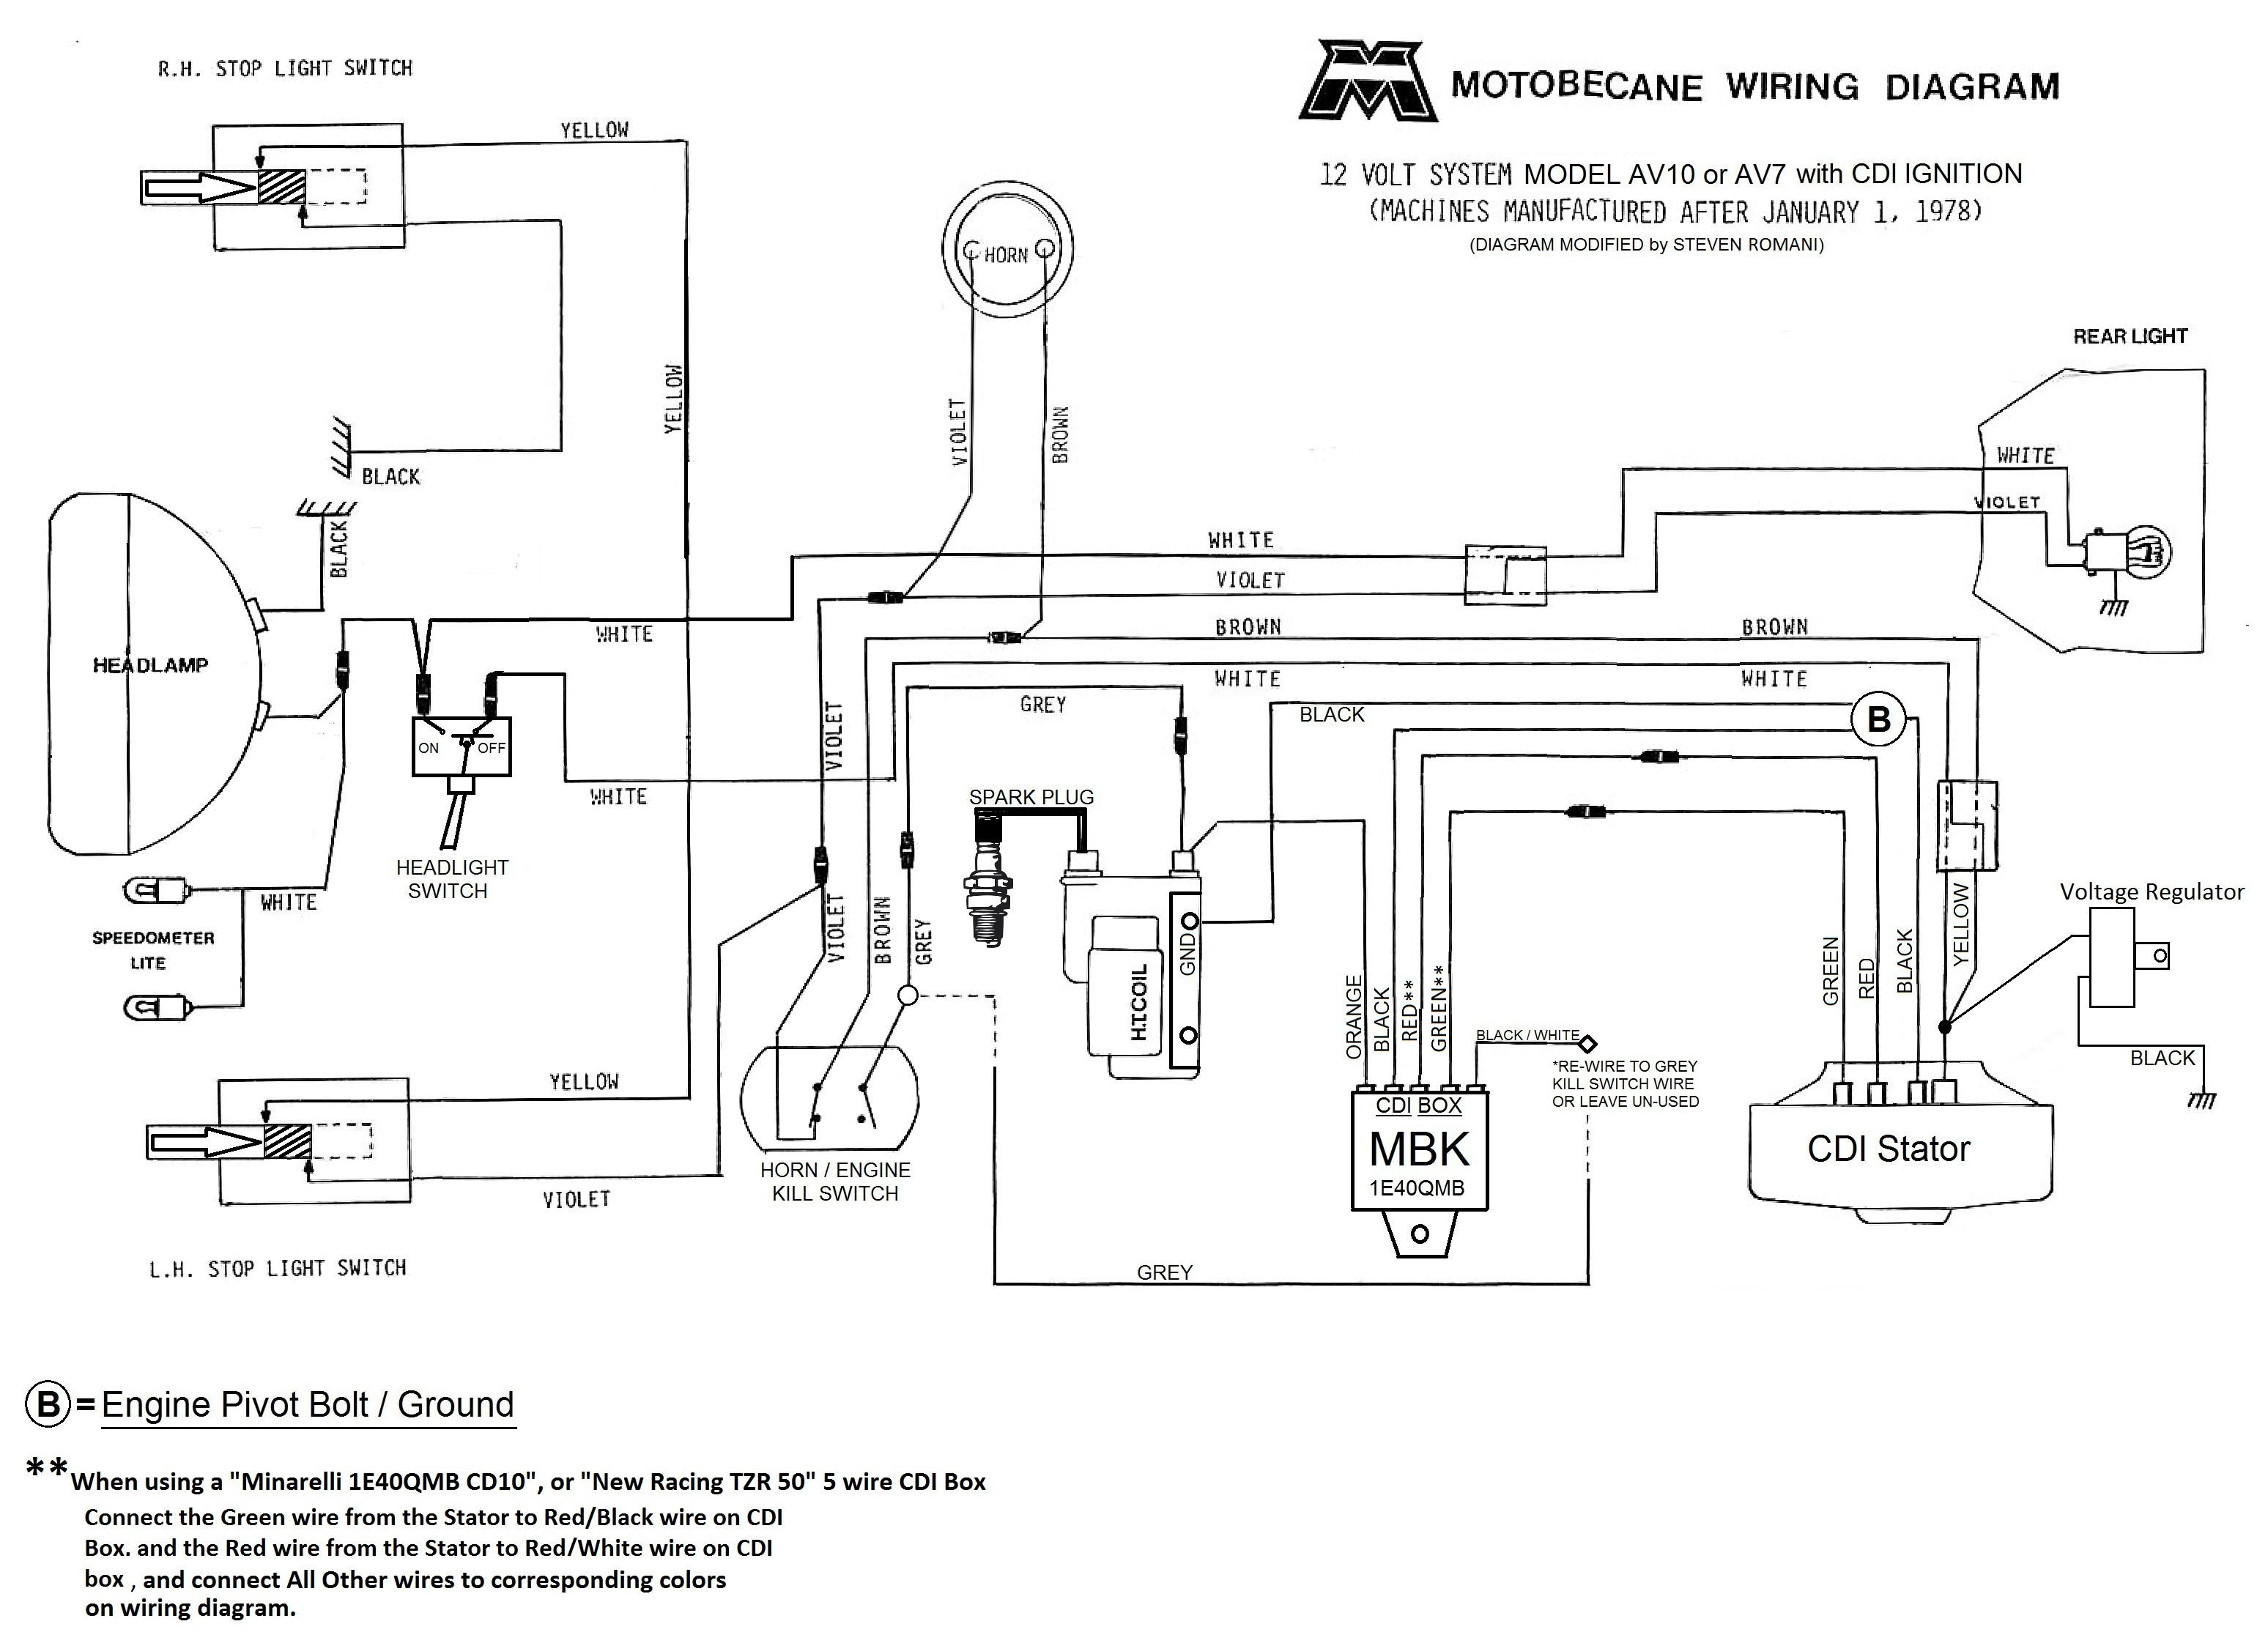 ... Motobecane 12v CDI wiring diagram AV10 and AV7.jpg